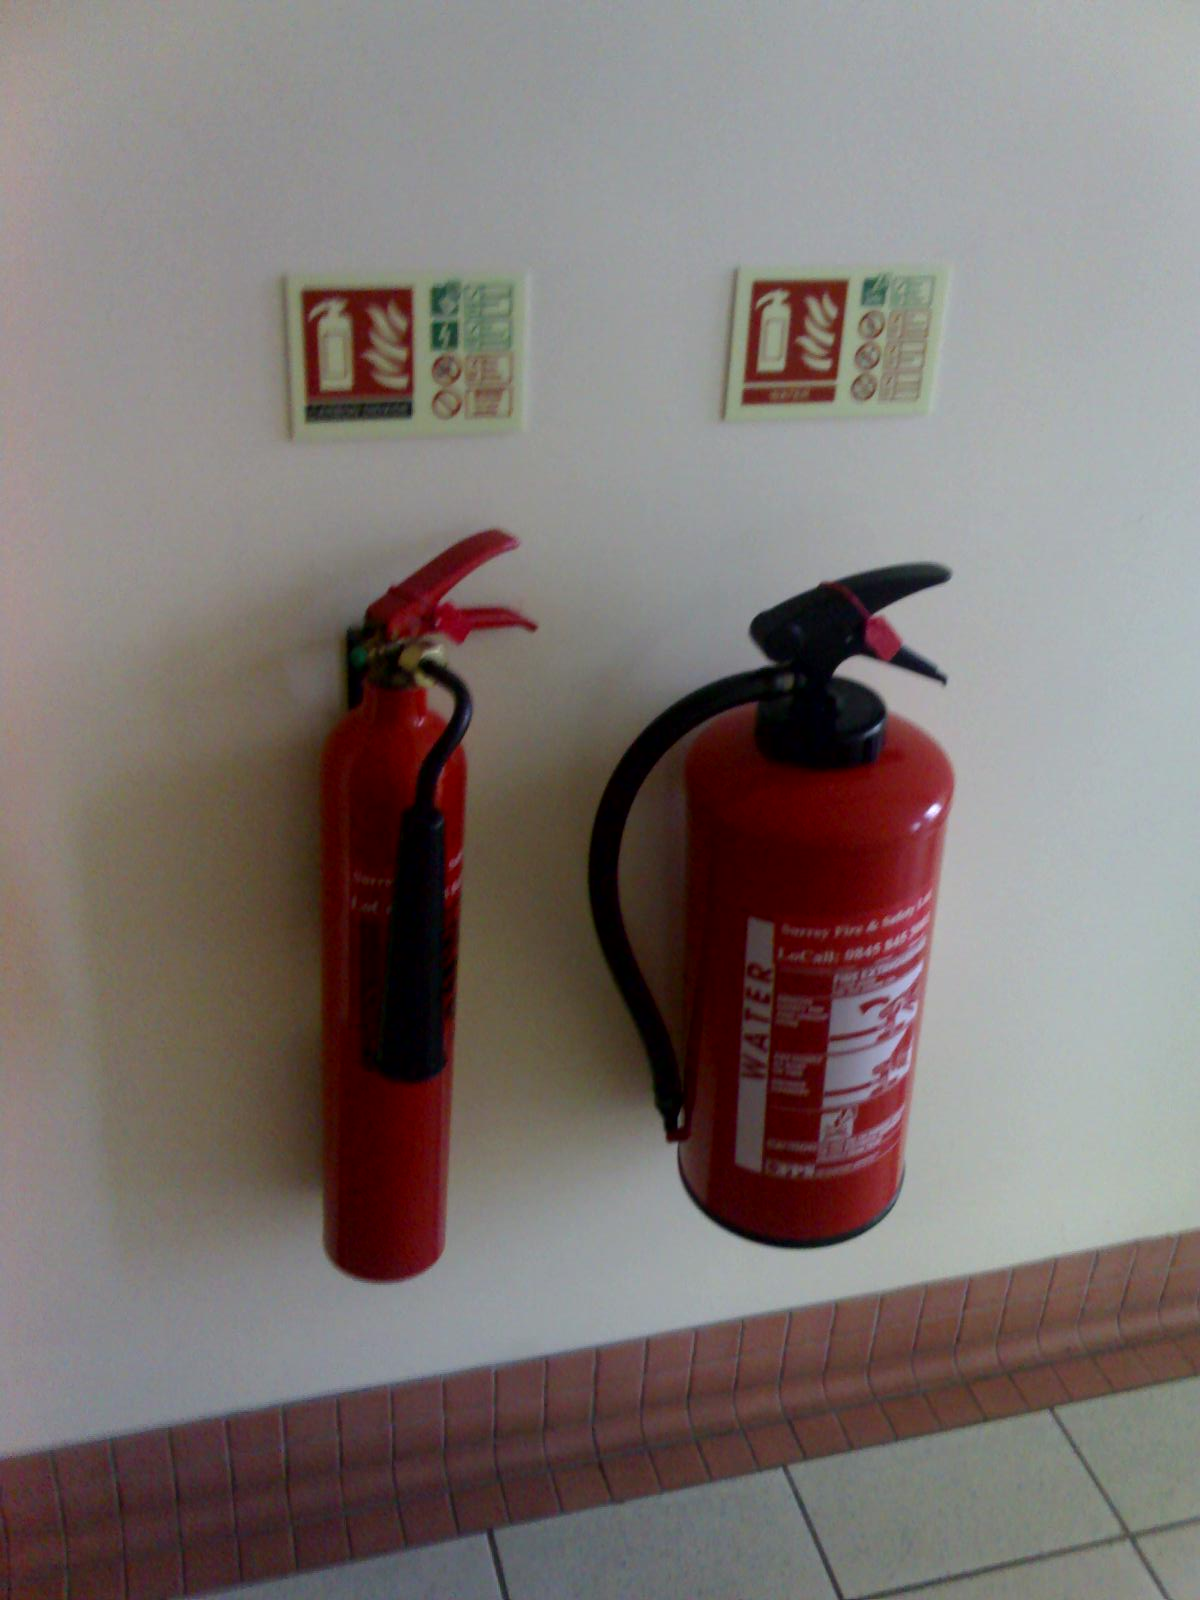 fire extinguisher for kitchen use design stores wiki everipedia